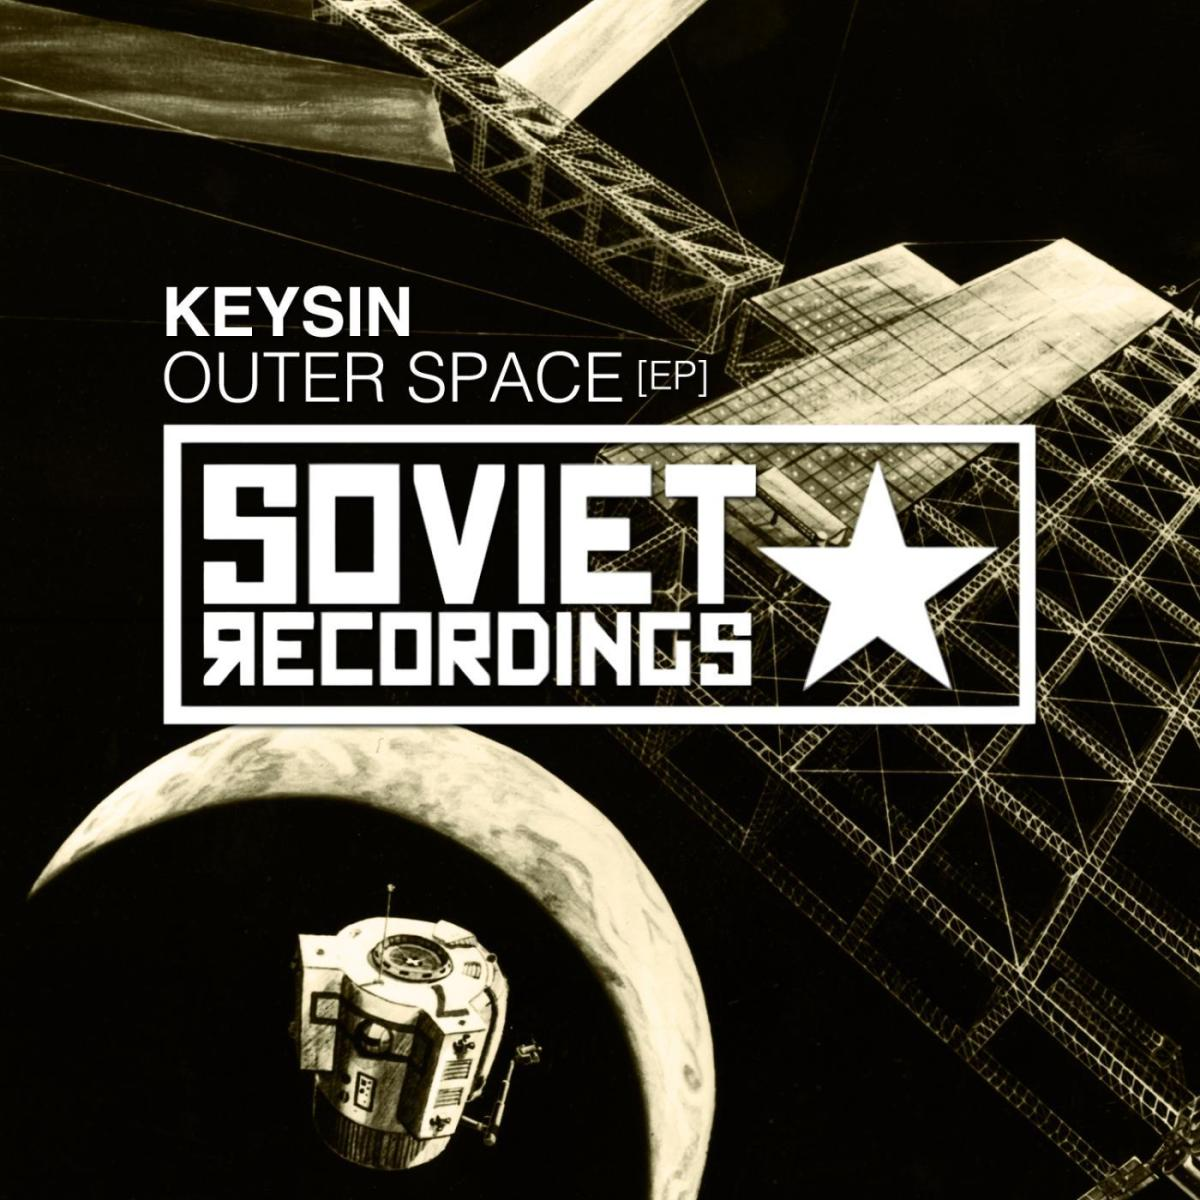 Keysin - Outer Space EP